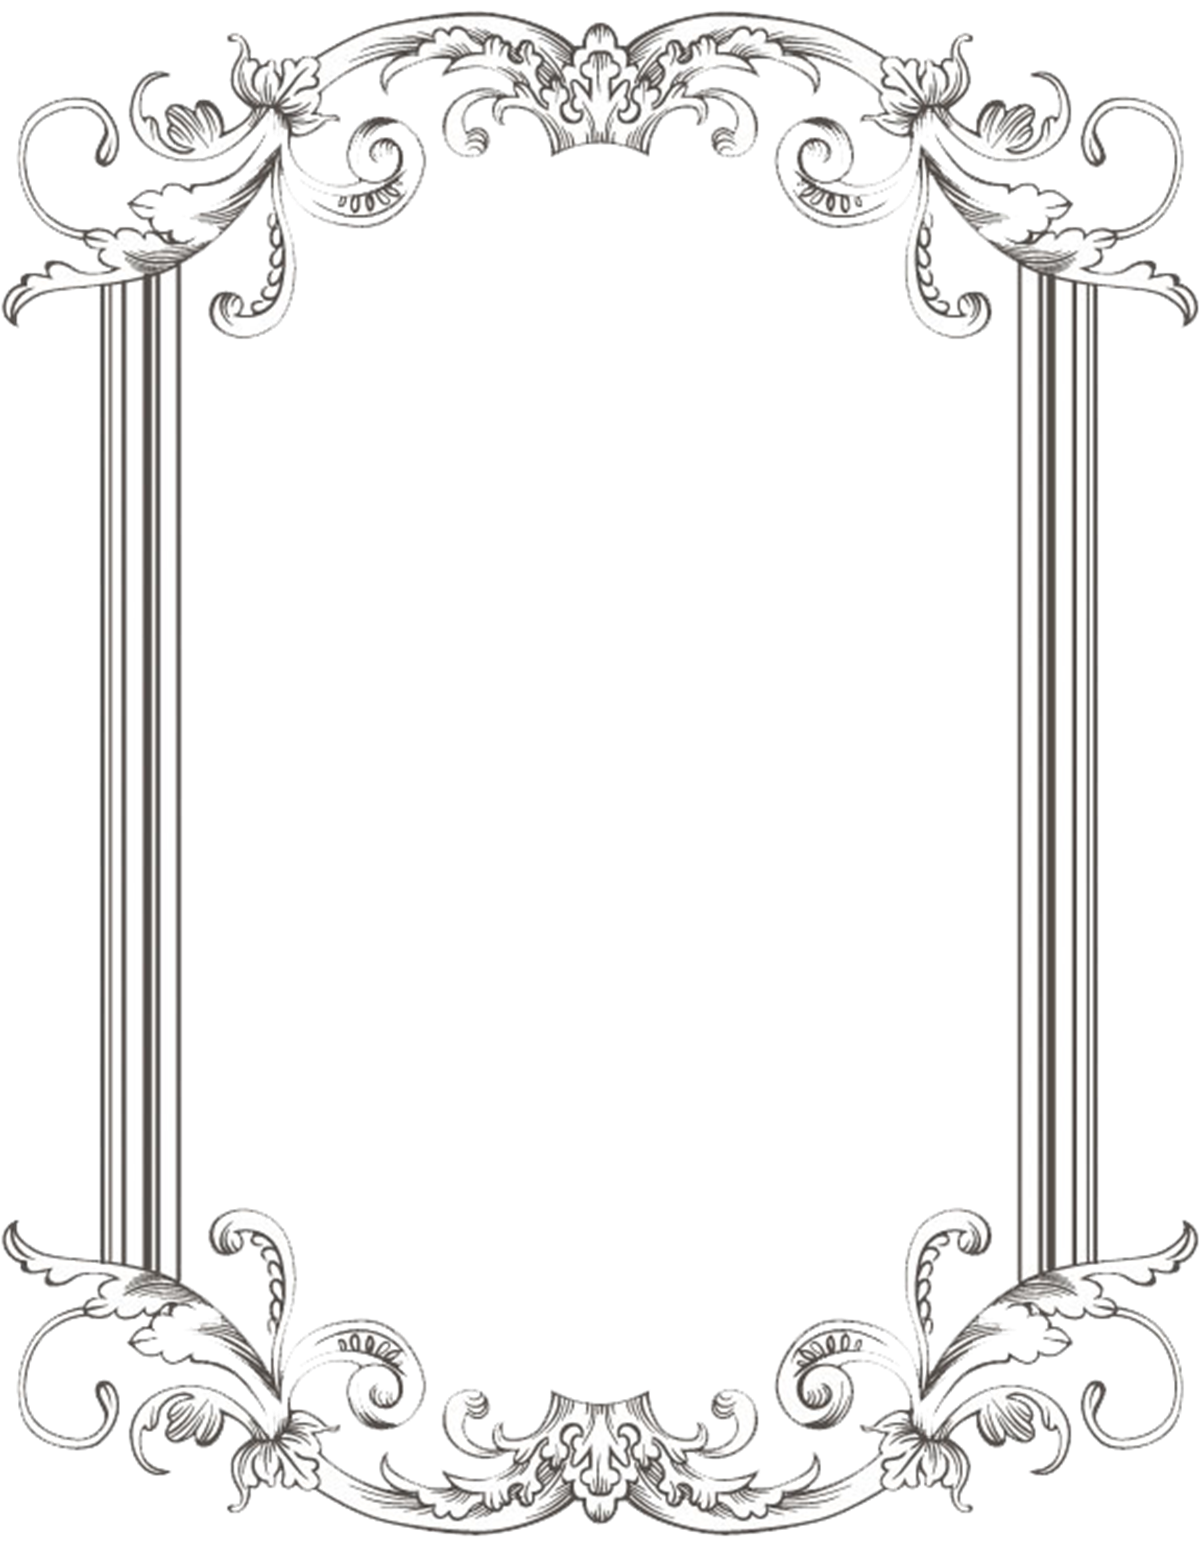 Marcos vintage png. Custom frame one by